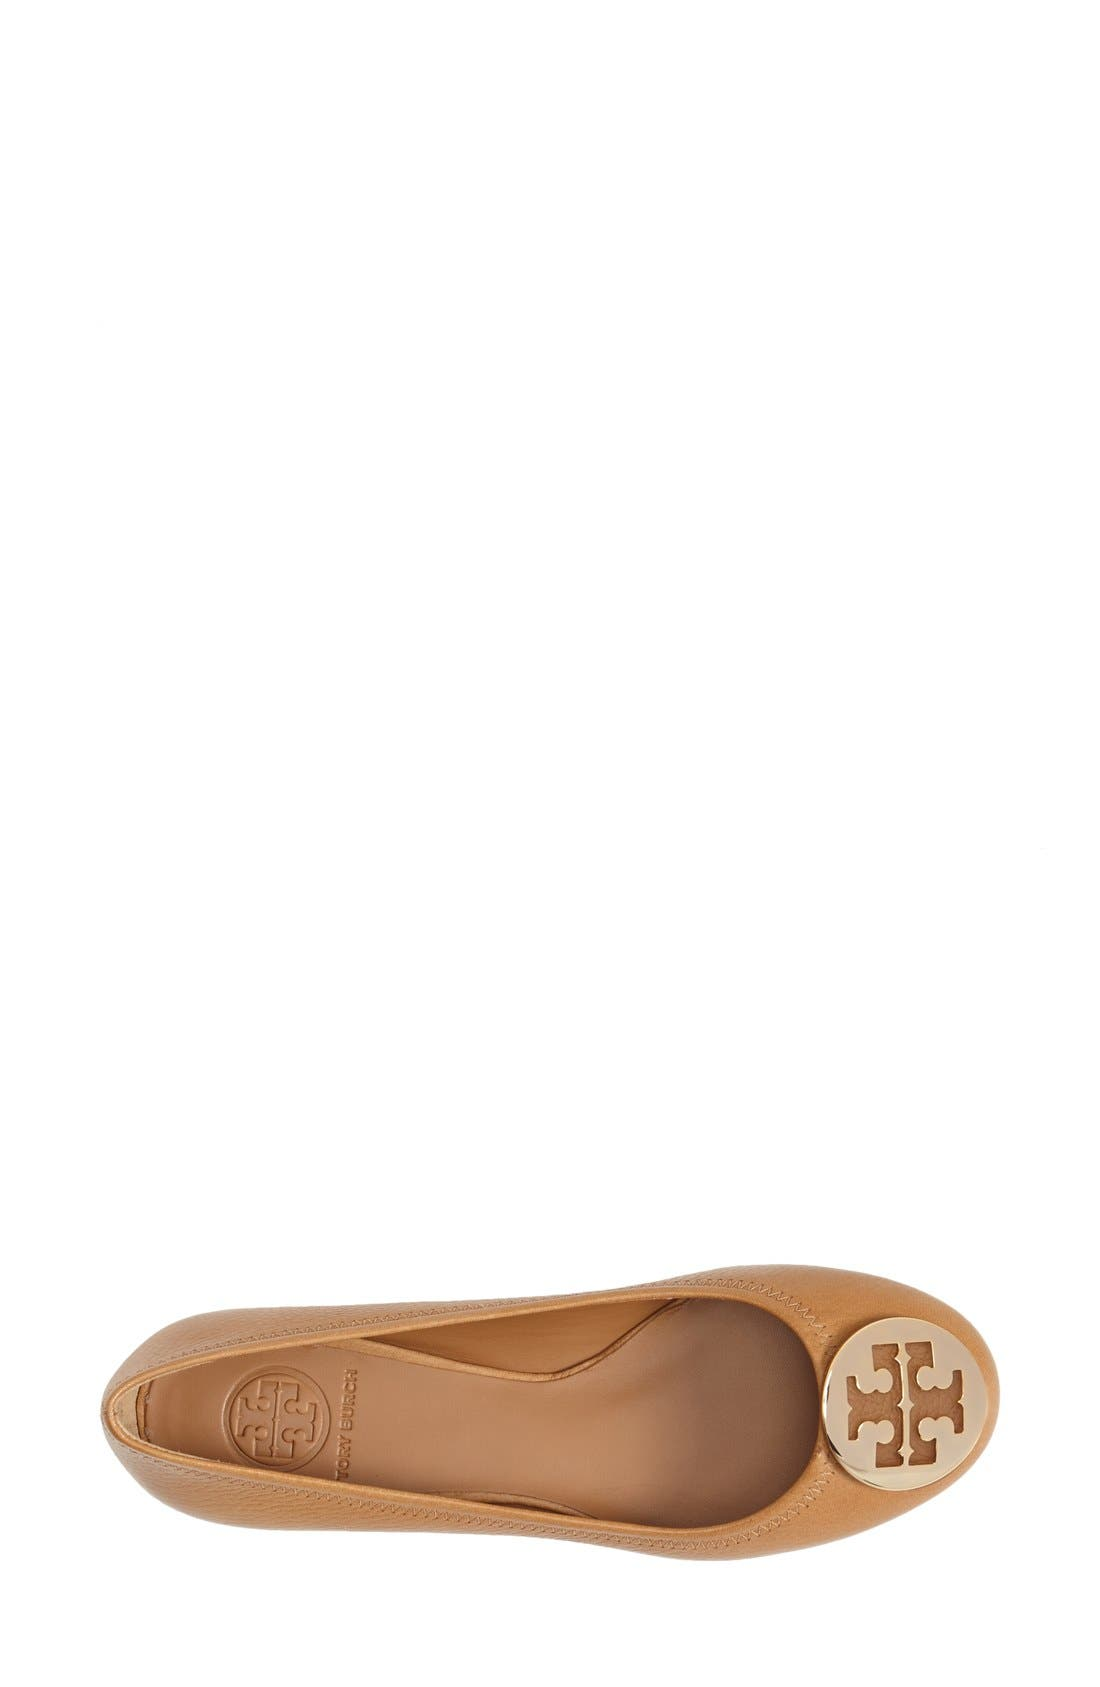 Alternate Image 3  - Tory Burch Reva Ballerina Flat (Women)